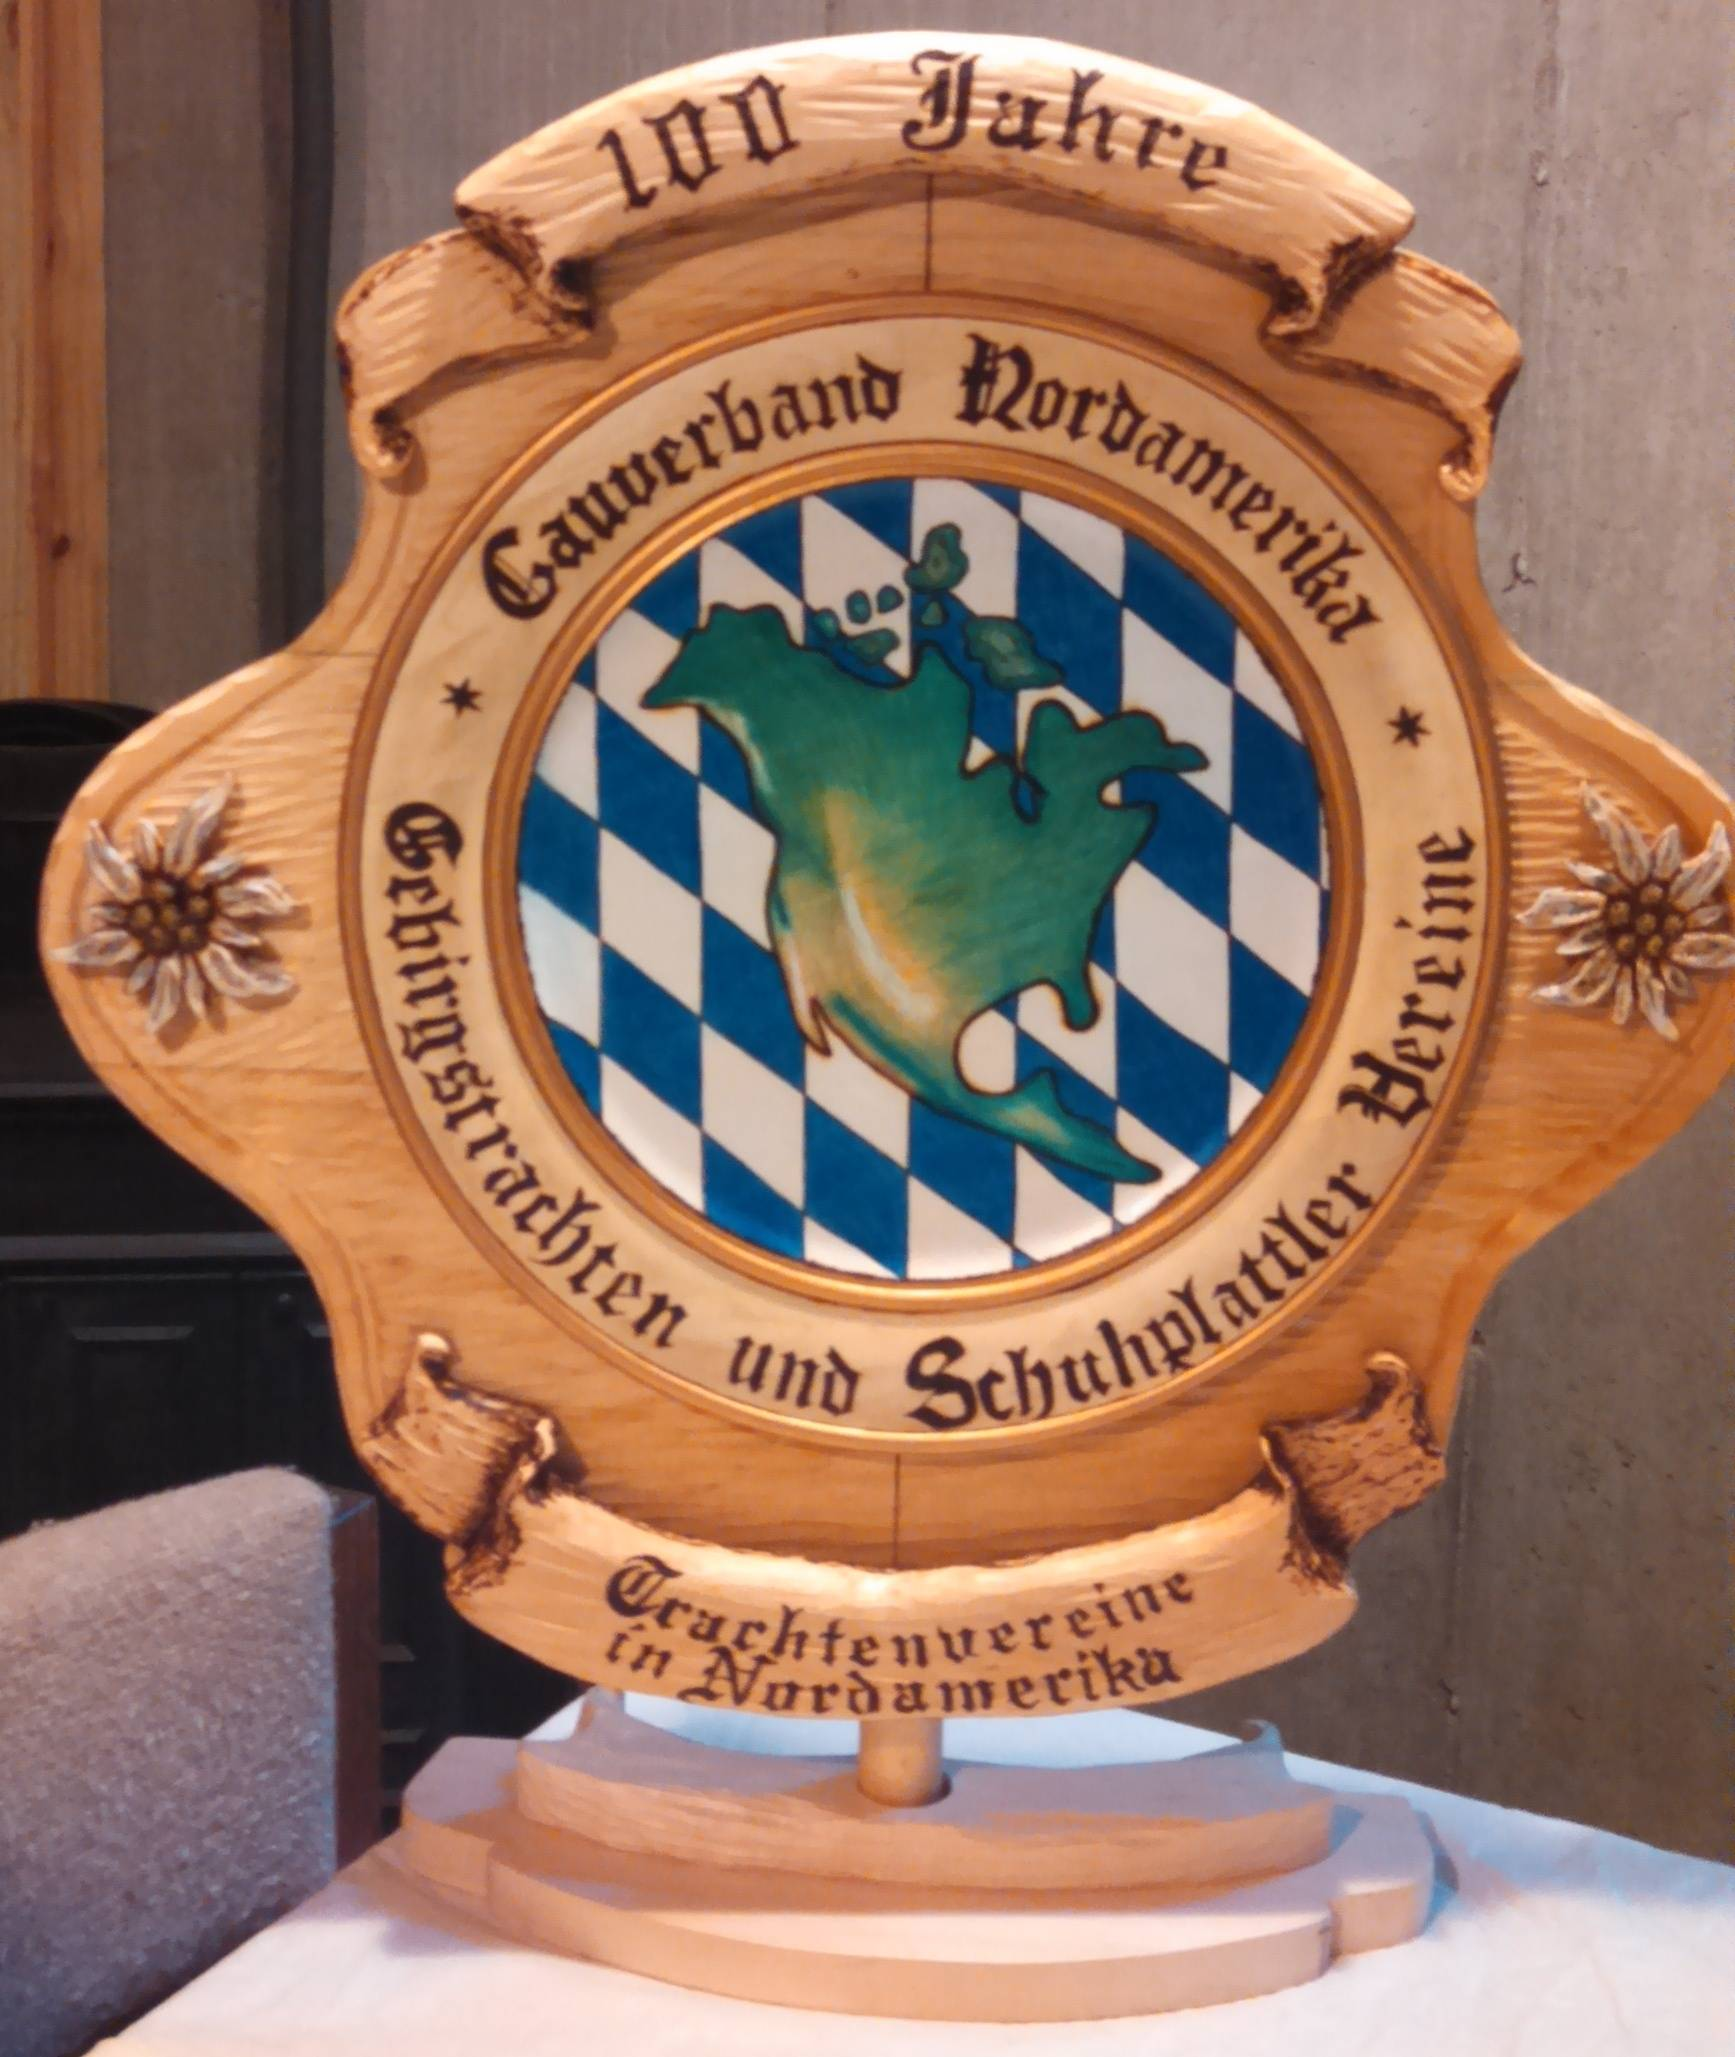 2014 Gau Tafel for Munich Oktoberfest